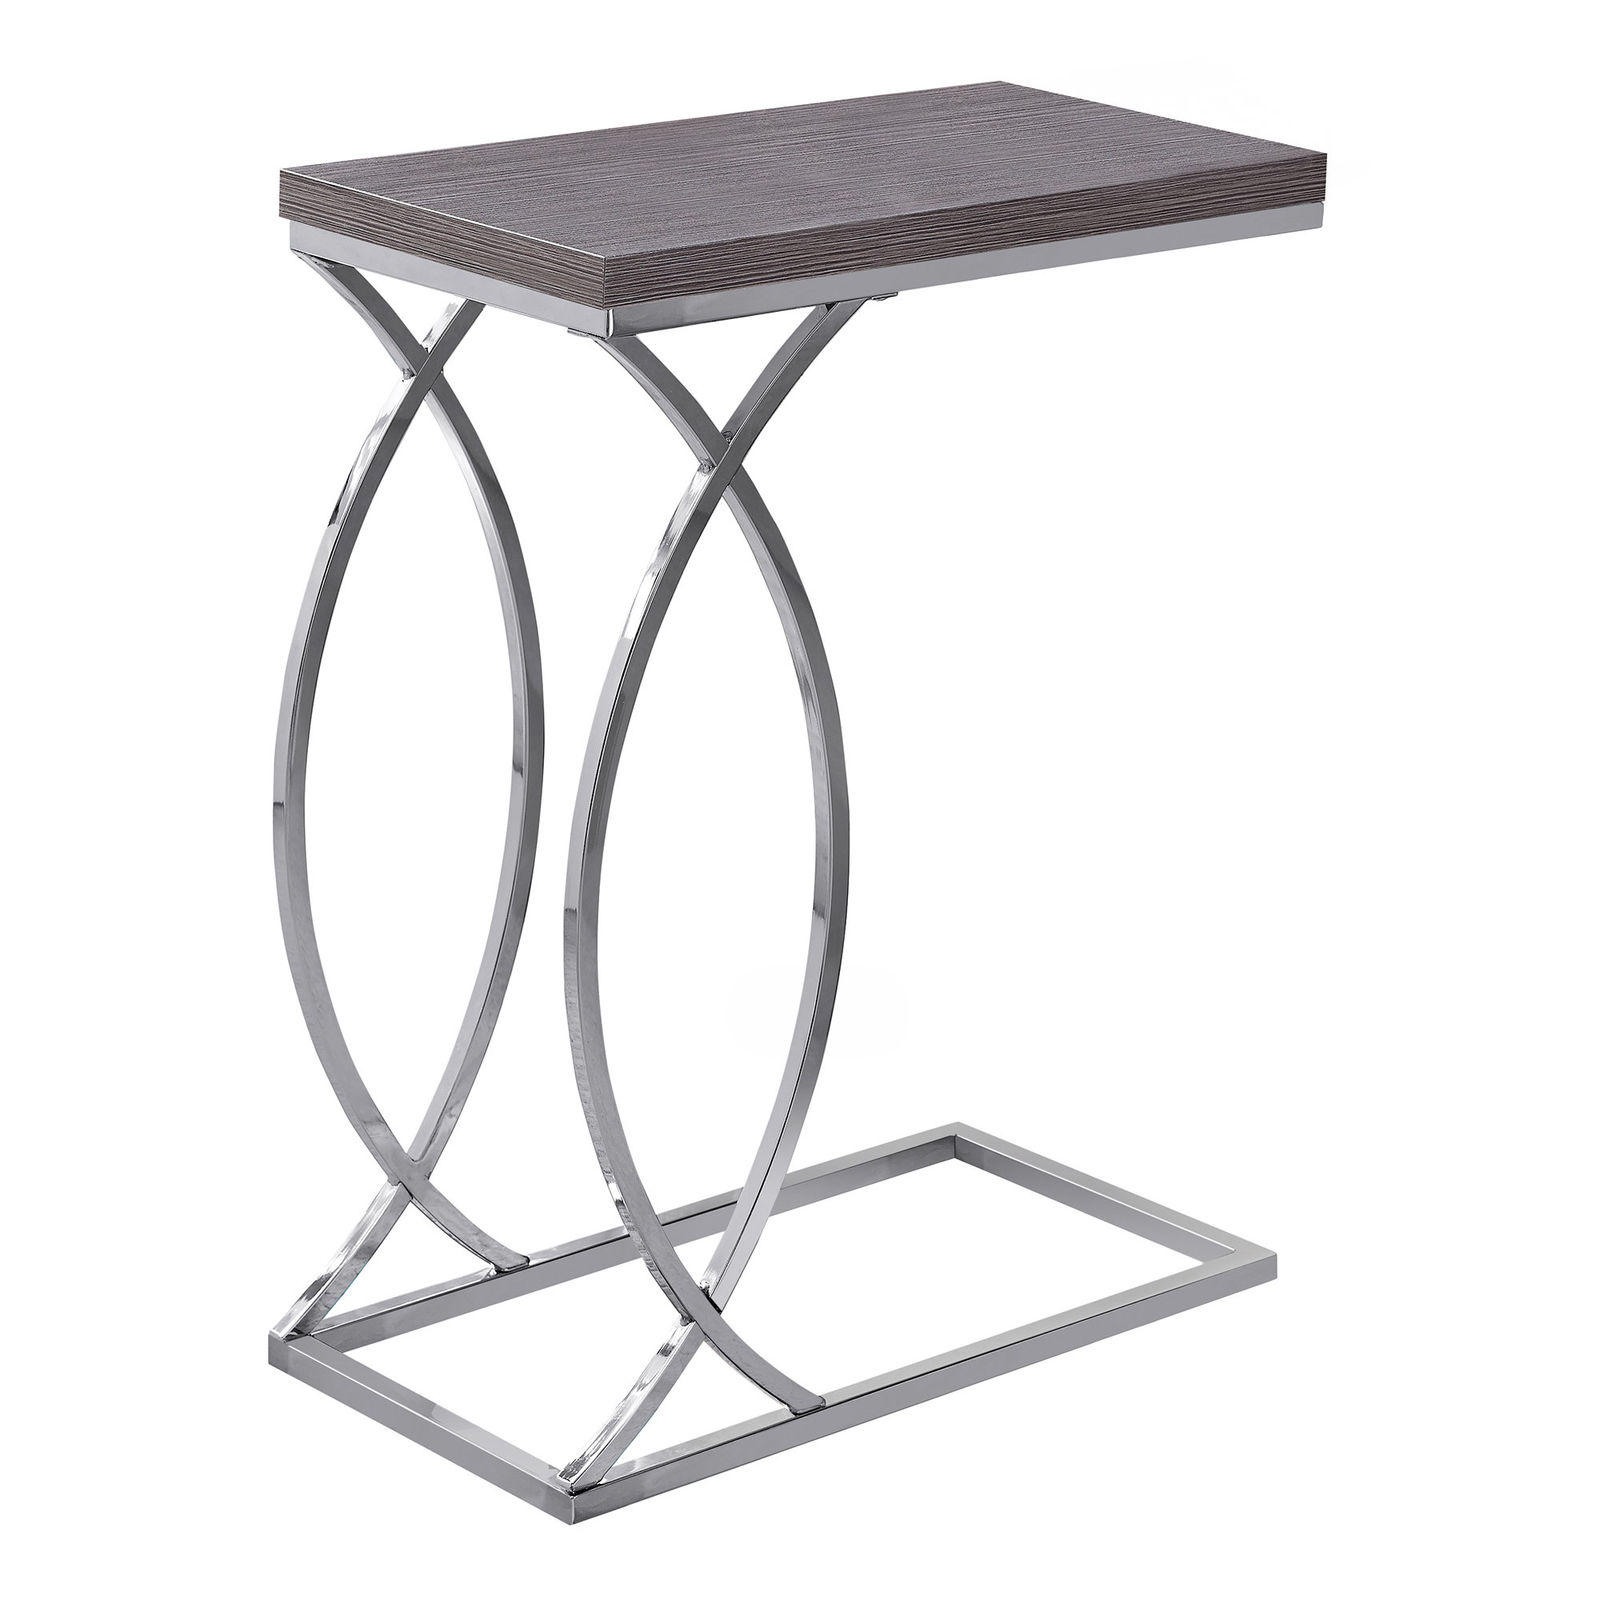 monarch mdf and metal accent table grey finish normande lighting led desk lamp gear counter height dining with bench chair covers target small decorative chest drawers drum stool